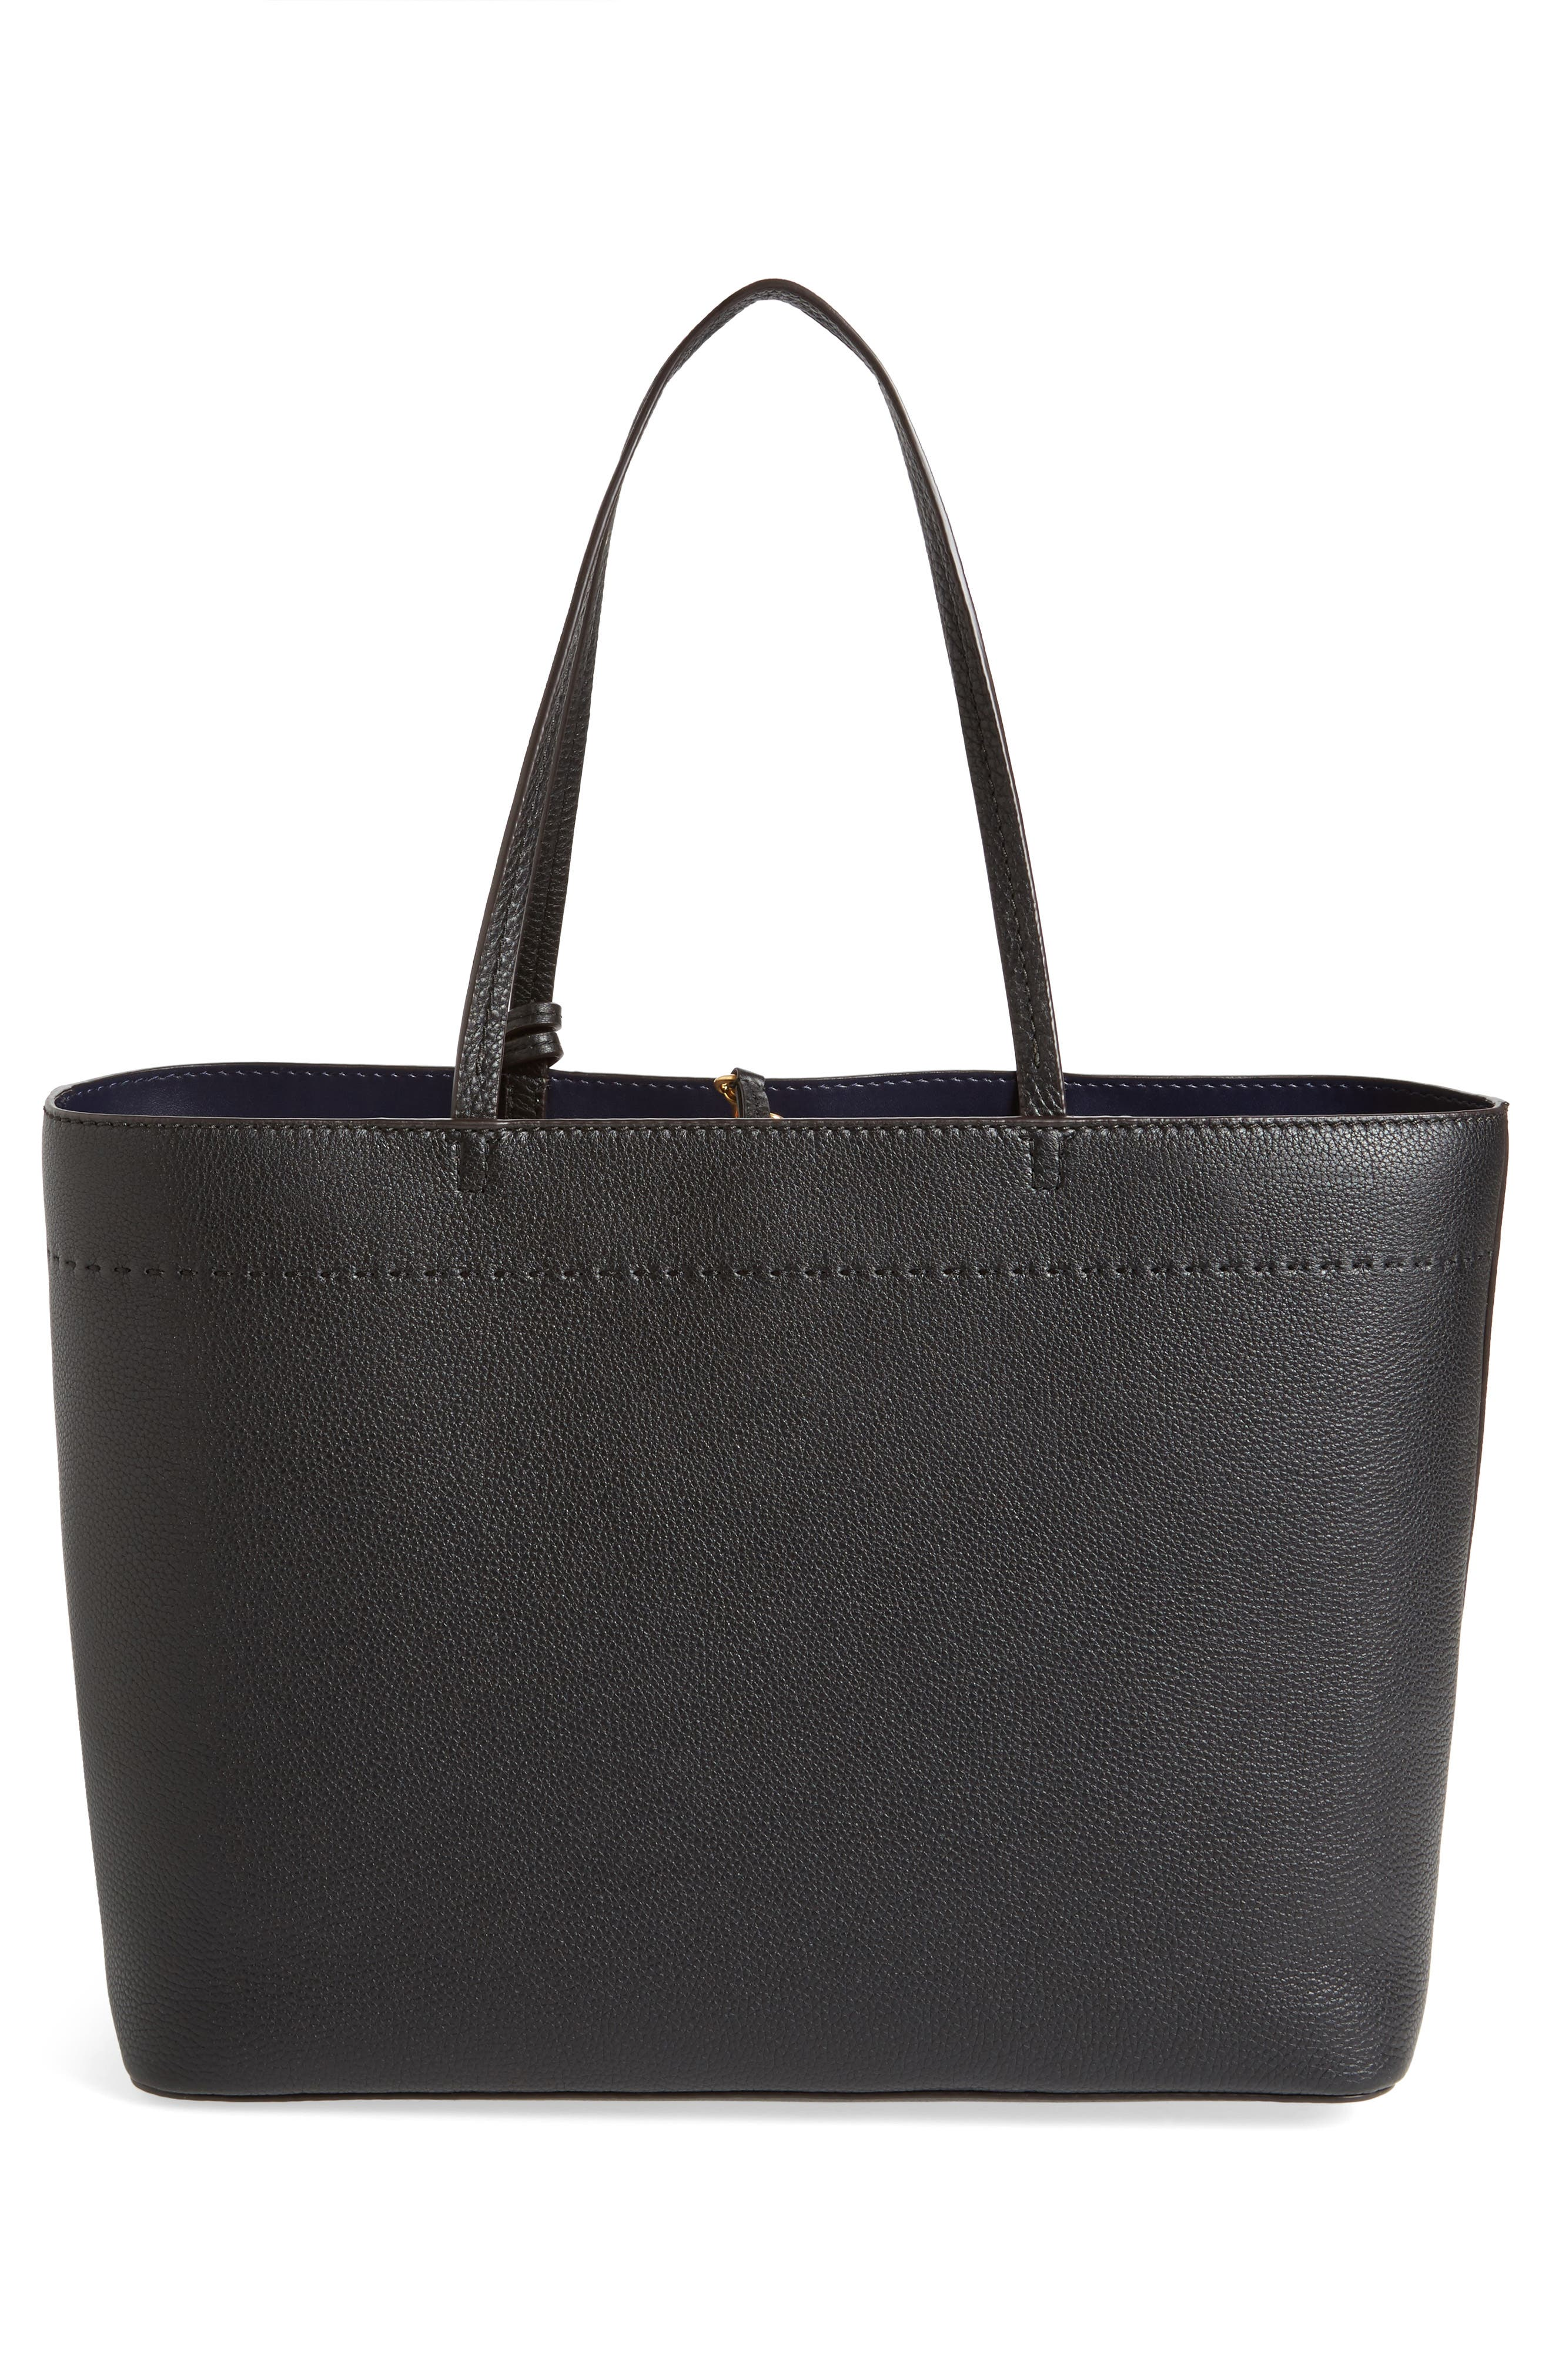 TORY BURCH, McGraw Leather Laptop Tote, Alternate thumbnail 4, color, BLACK/ ROYAL NAVY